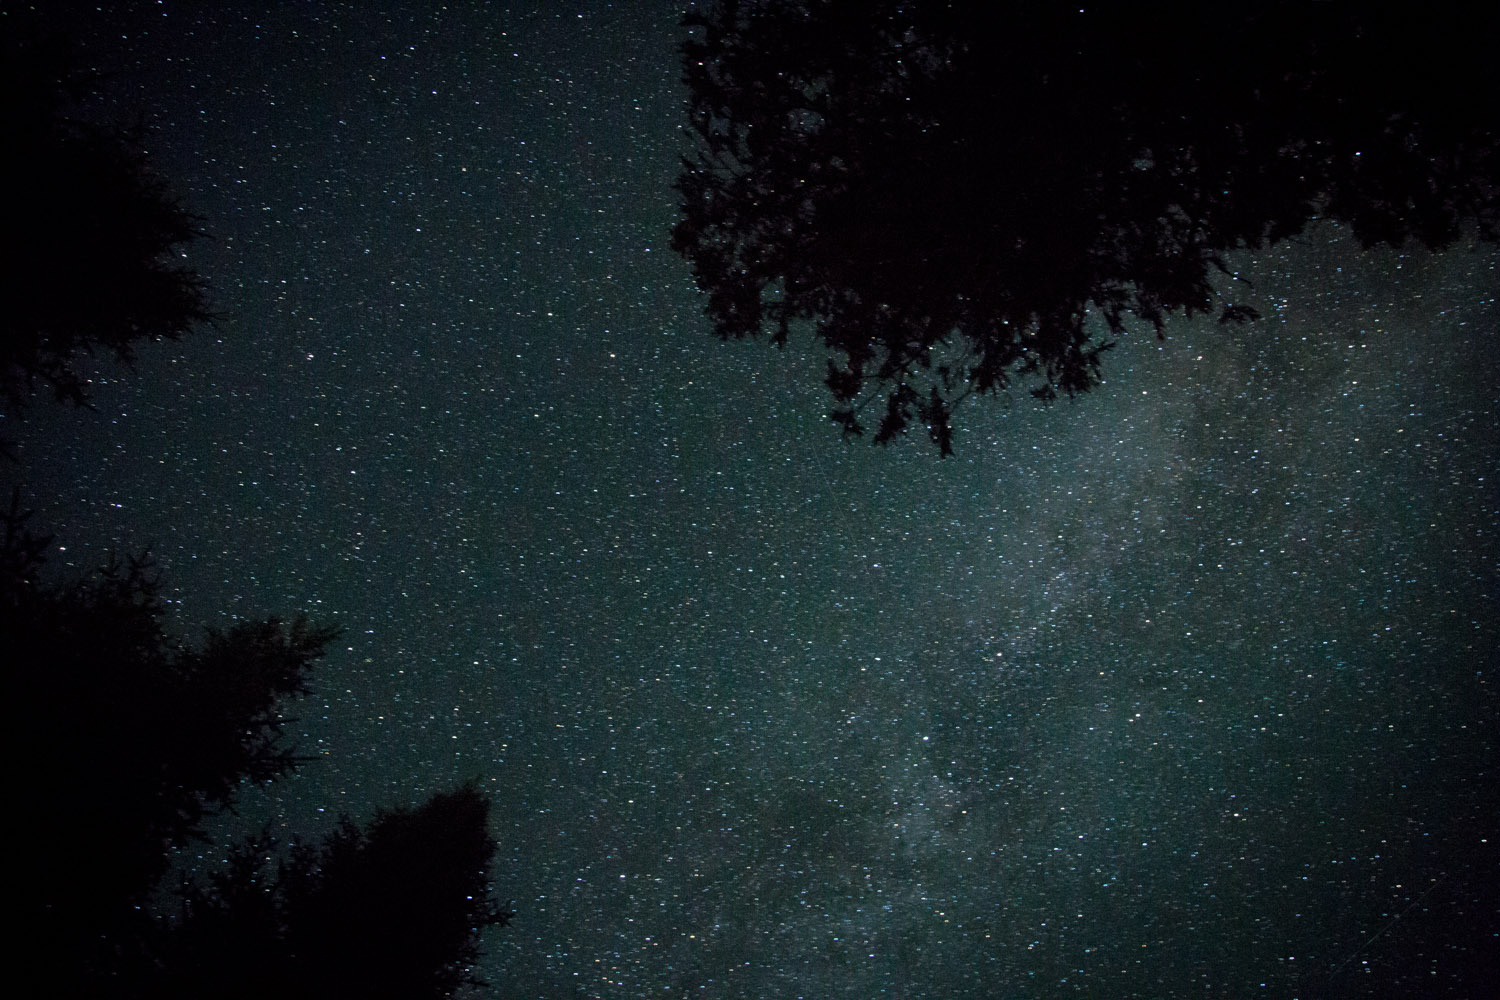 Another shot of that milkyway